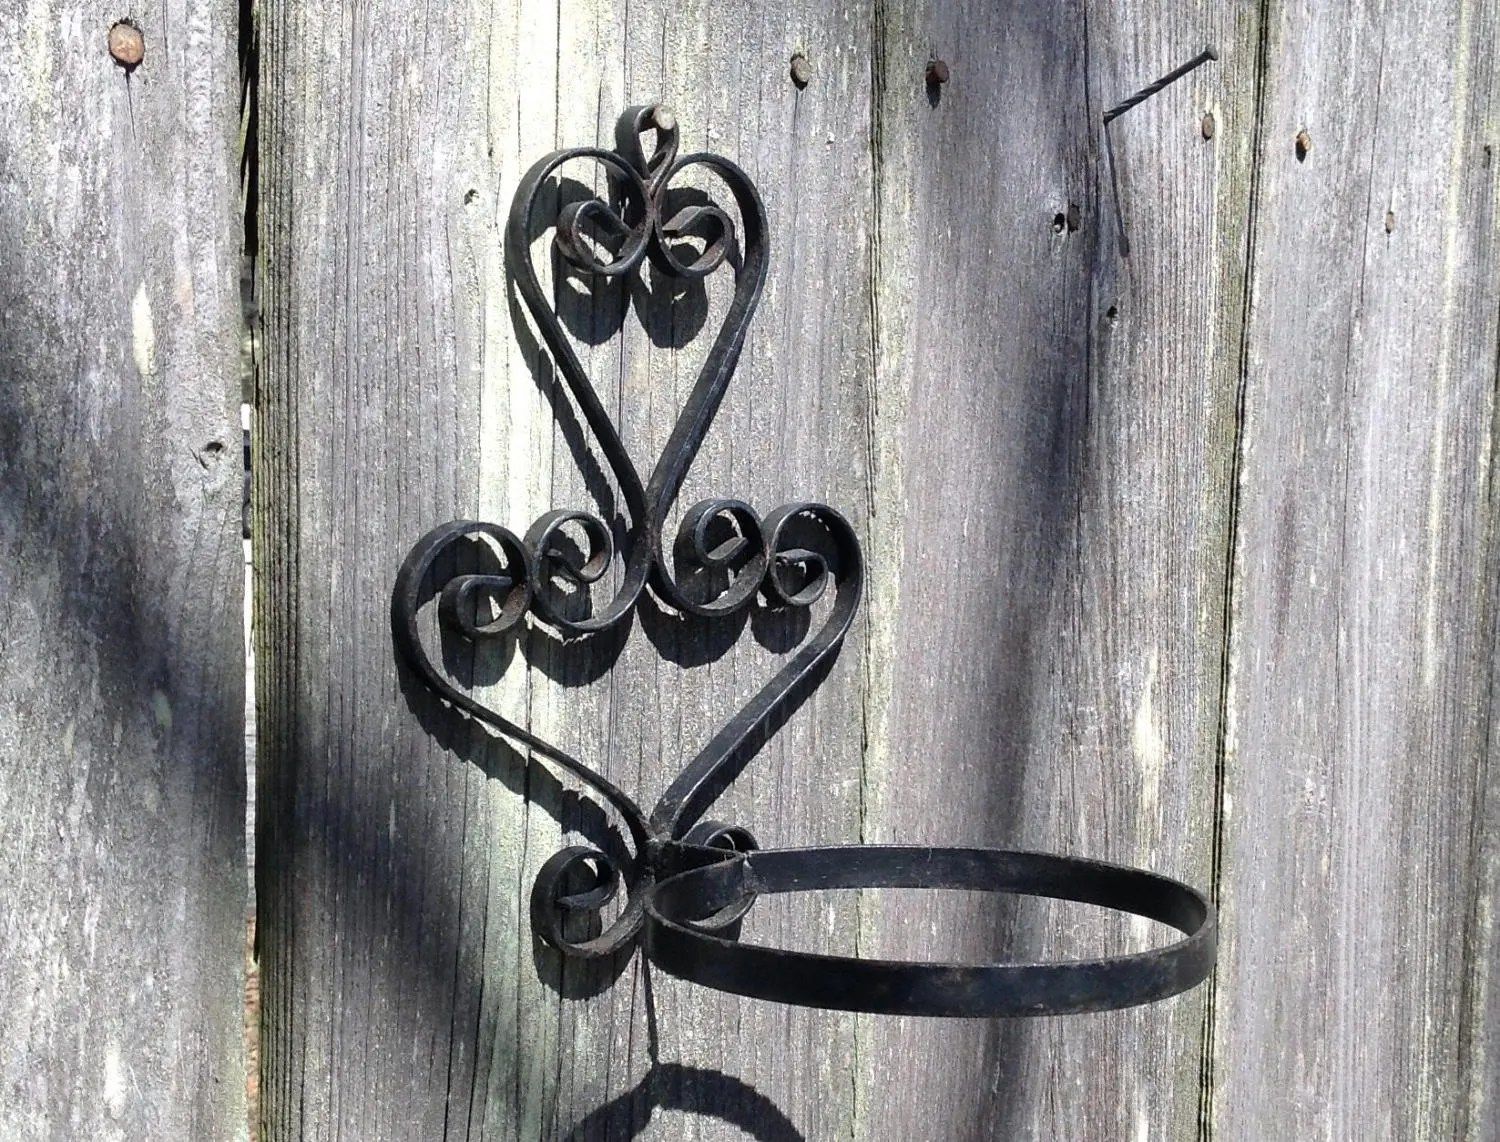 Wall Mounted Plant Holders Wrought Iron Ring Plant Holder Wall Mounted Planter Flower Pot